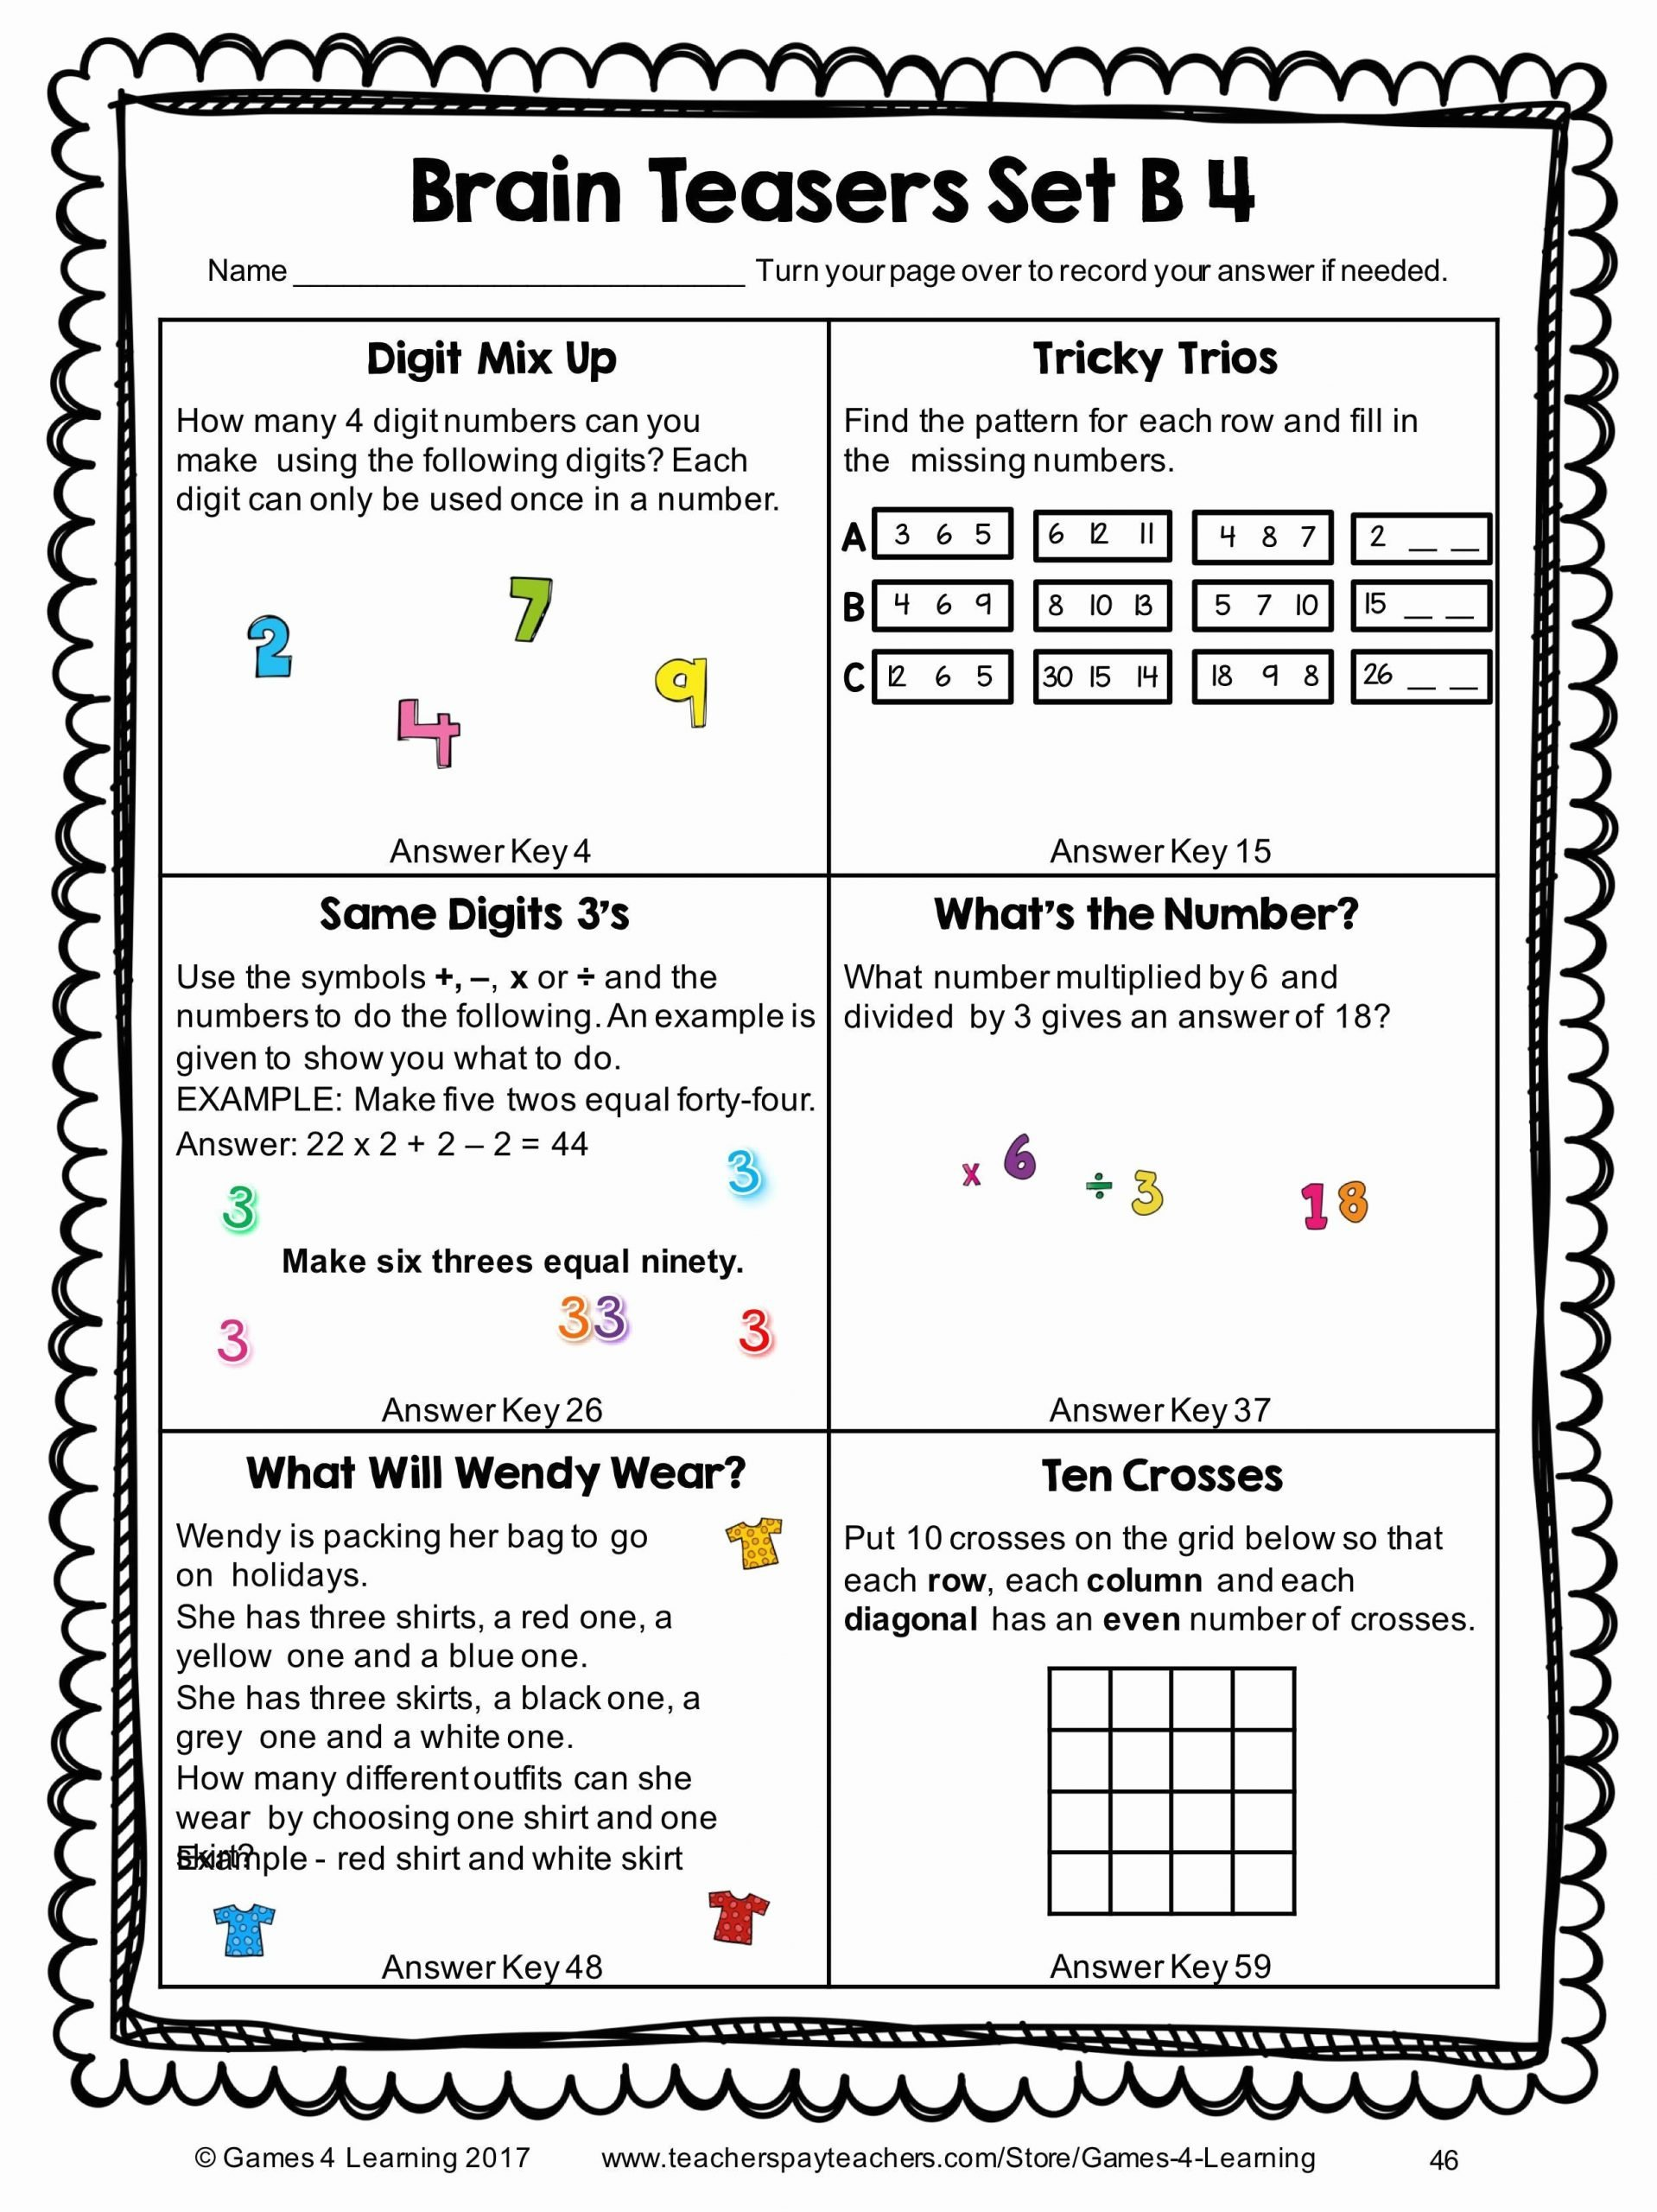 Brain Teasers Worksheet 2 Answers 6th Grade Brain Teasers Worksheets